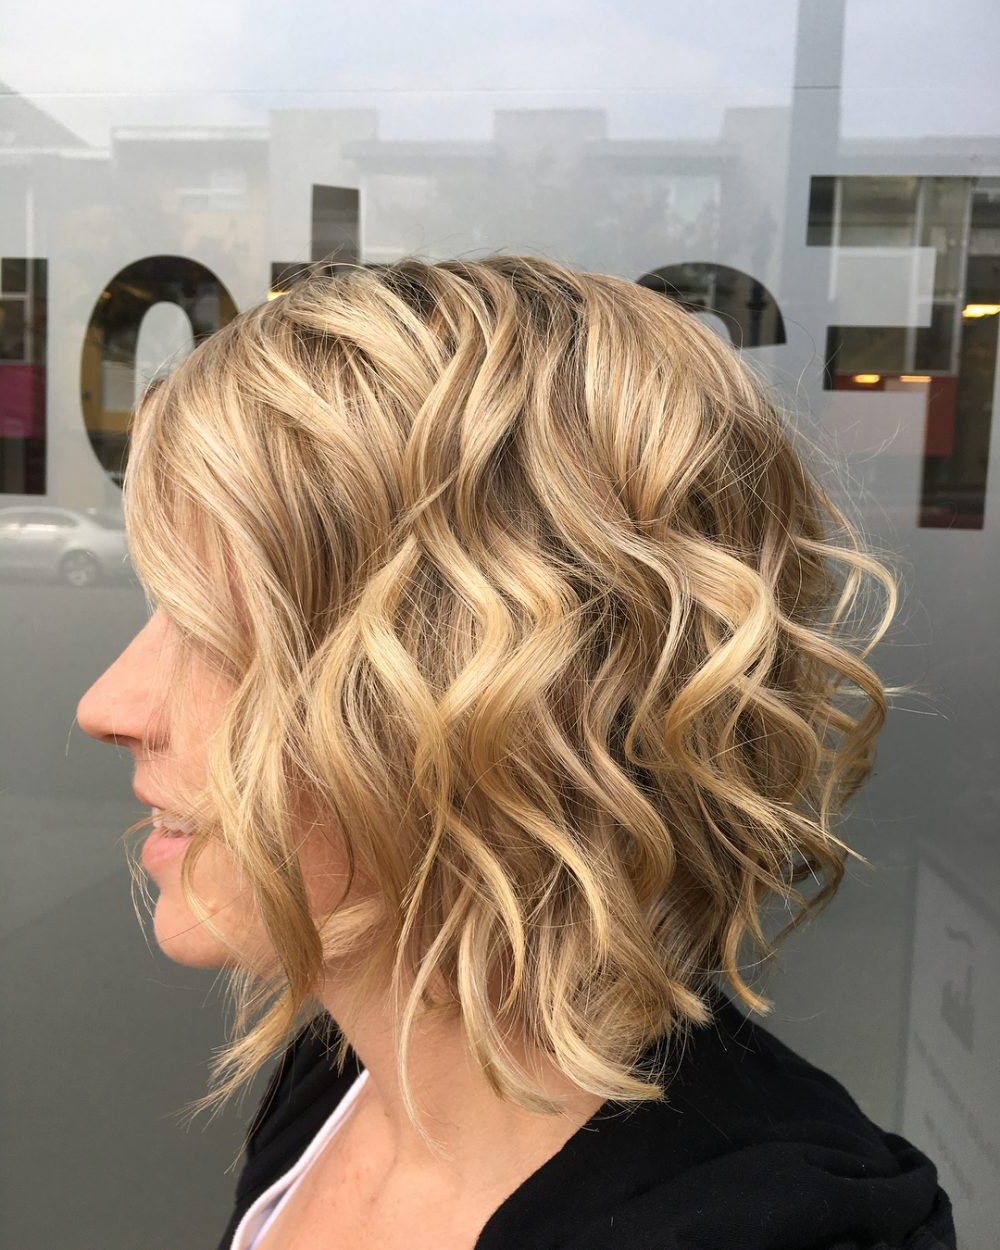 43 Greatest Wavy Bob Hairstyles – Short, Medium And Long In 2019 With Short Bob Haircuts With Waves (View 6 of 20)